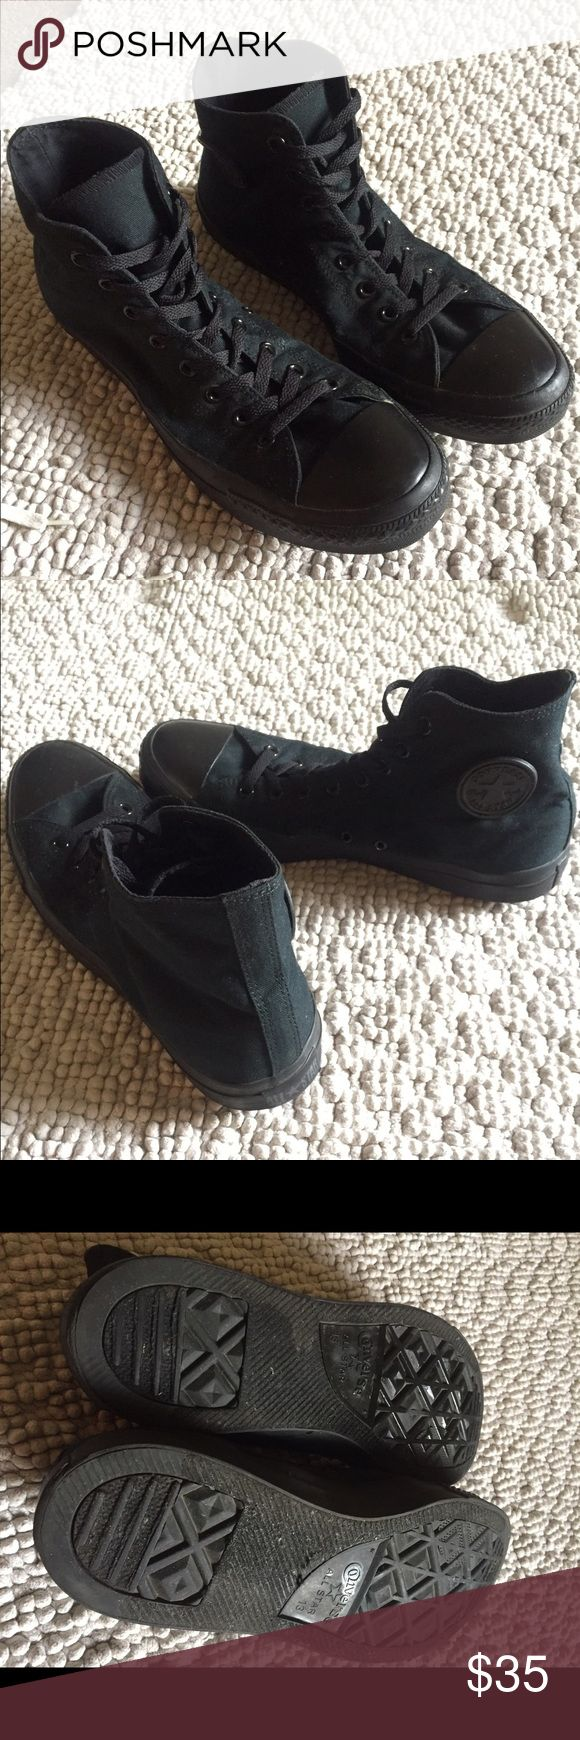 Men's All Black High-Top Chuck Taylors Size 13 Men Men's All Black High-Top Chuck Taylors Size 13 Men Converse Shoes